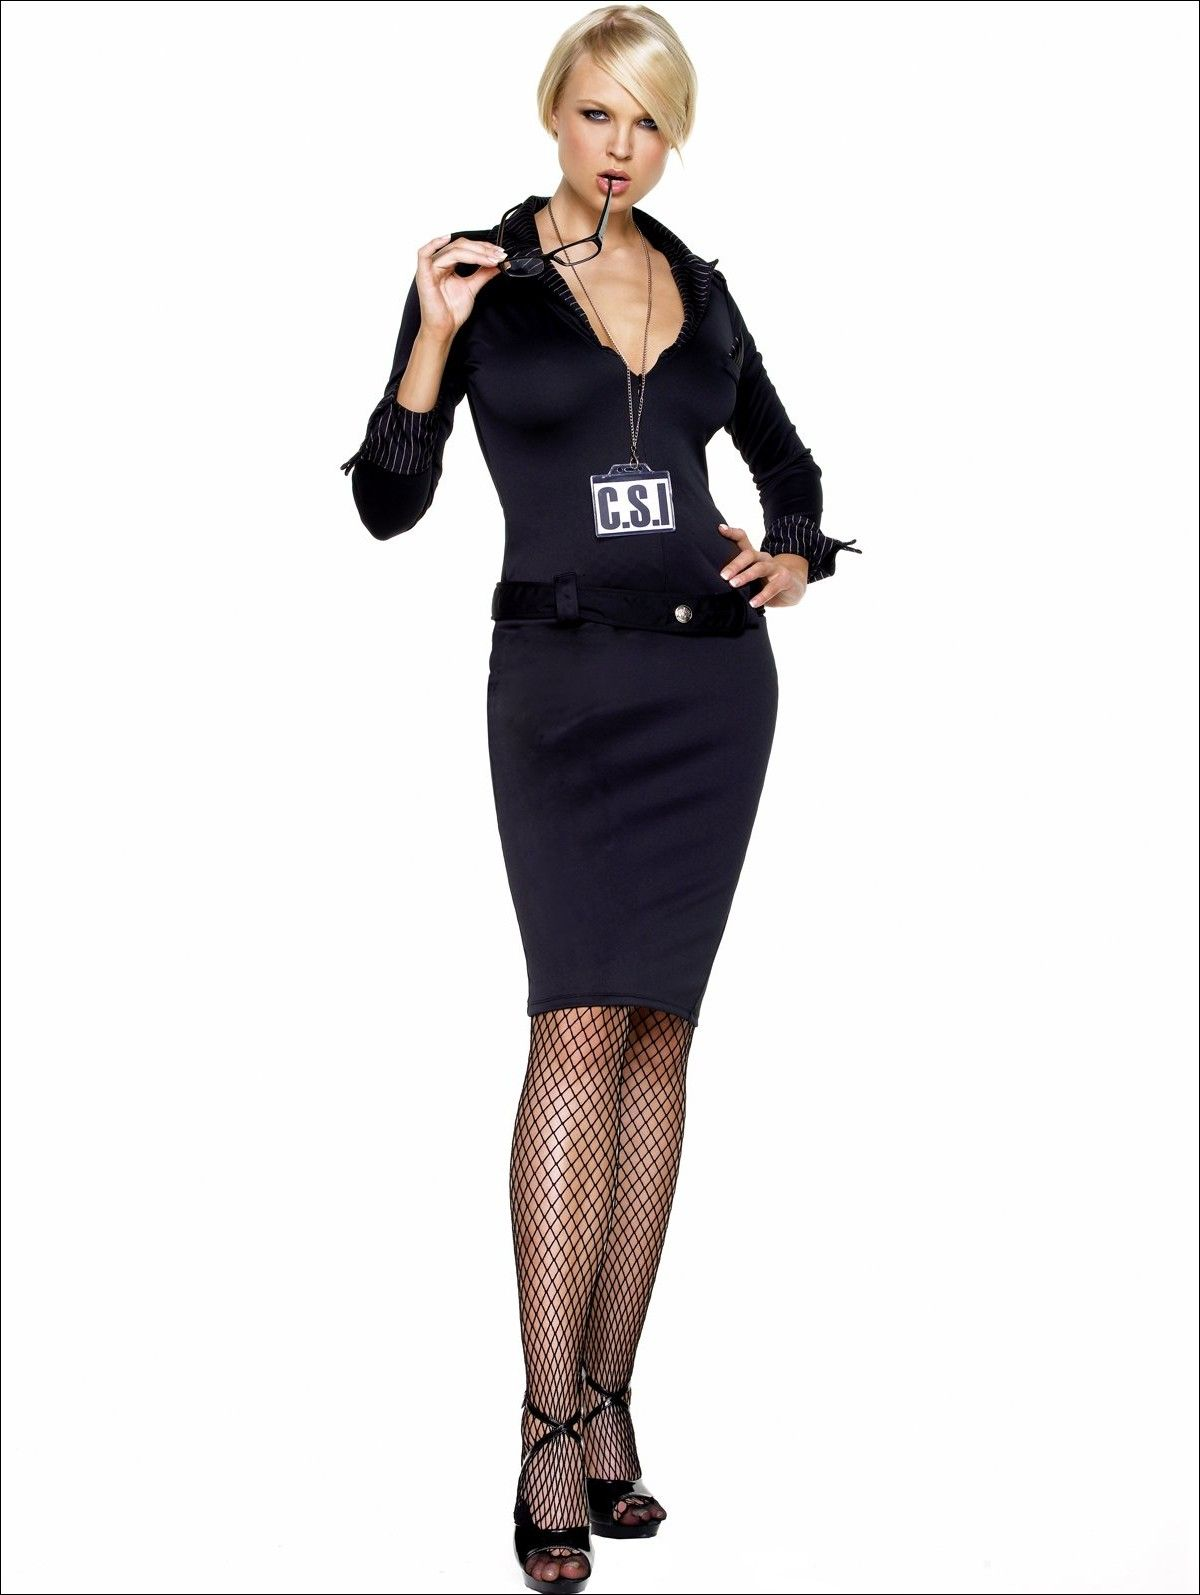 Dress code evening attire - Casual Dressy Fashion For Women 2013 Business Casual Dress Code Clothes For Women